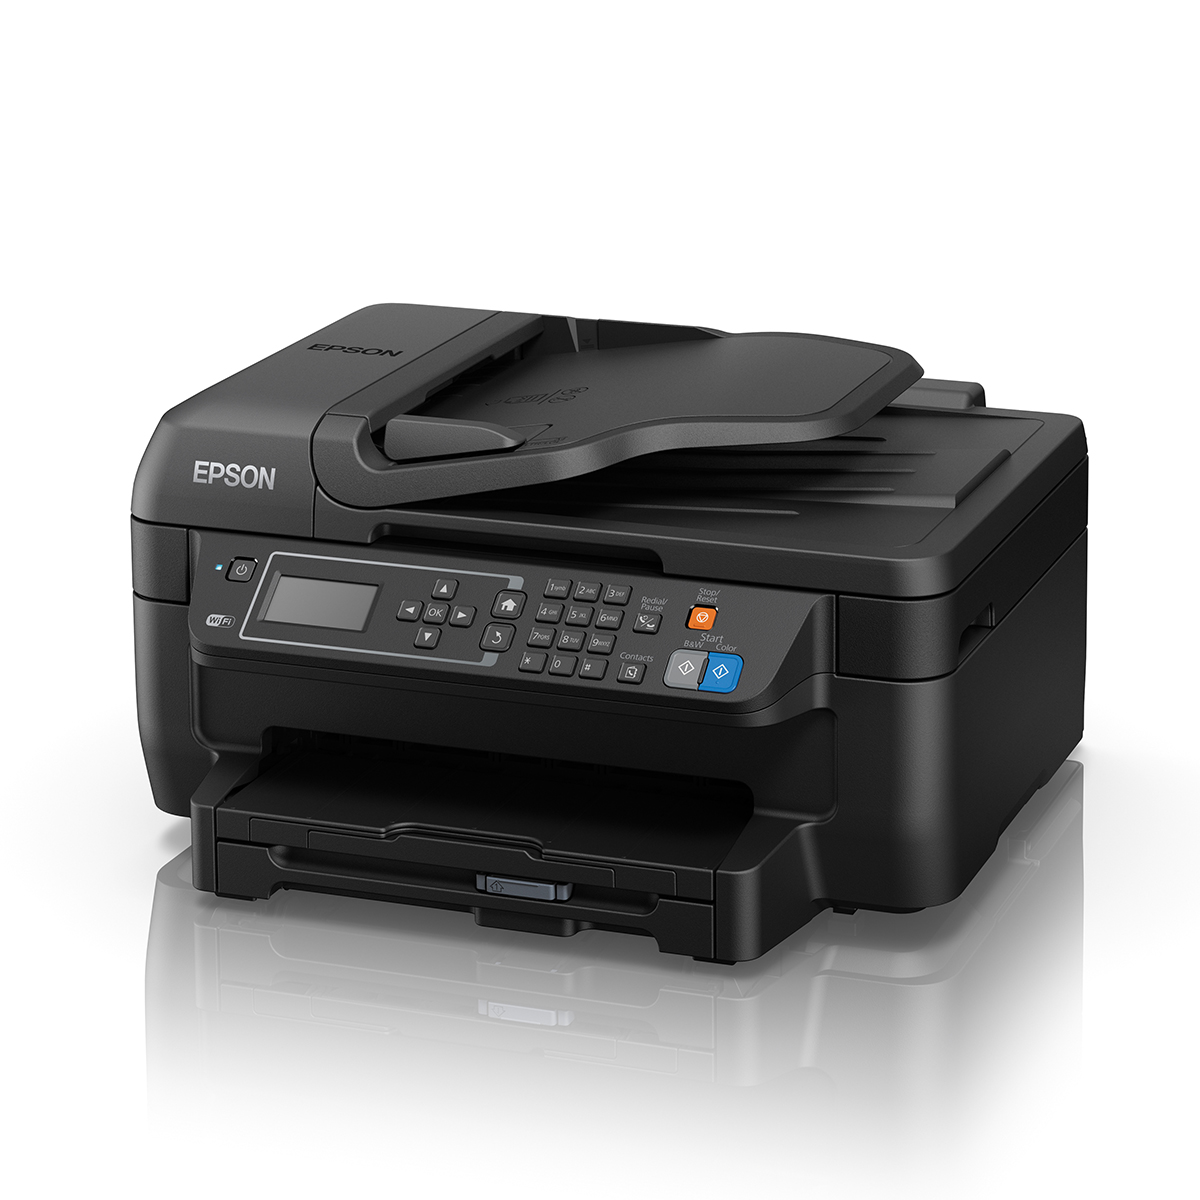 Epson WorkForce WF-2750DWF Colour Inkjet All-In-One Multifunction